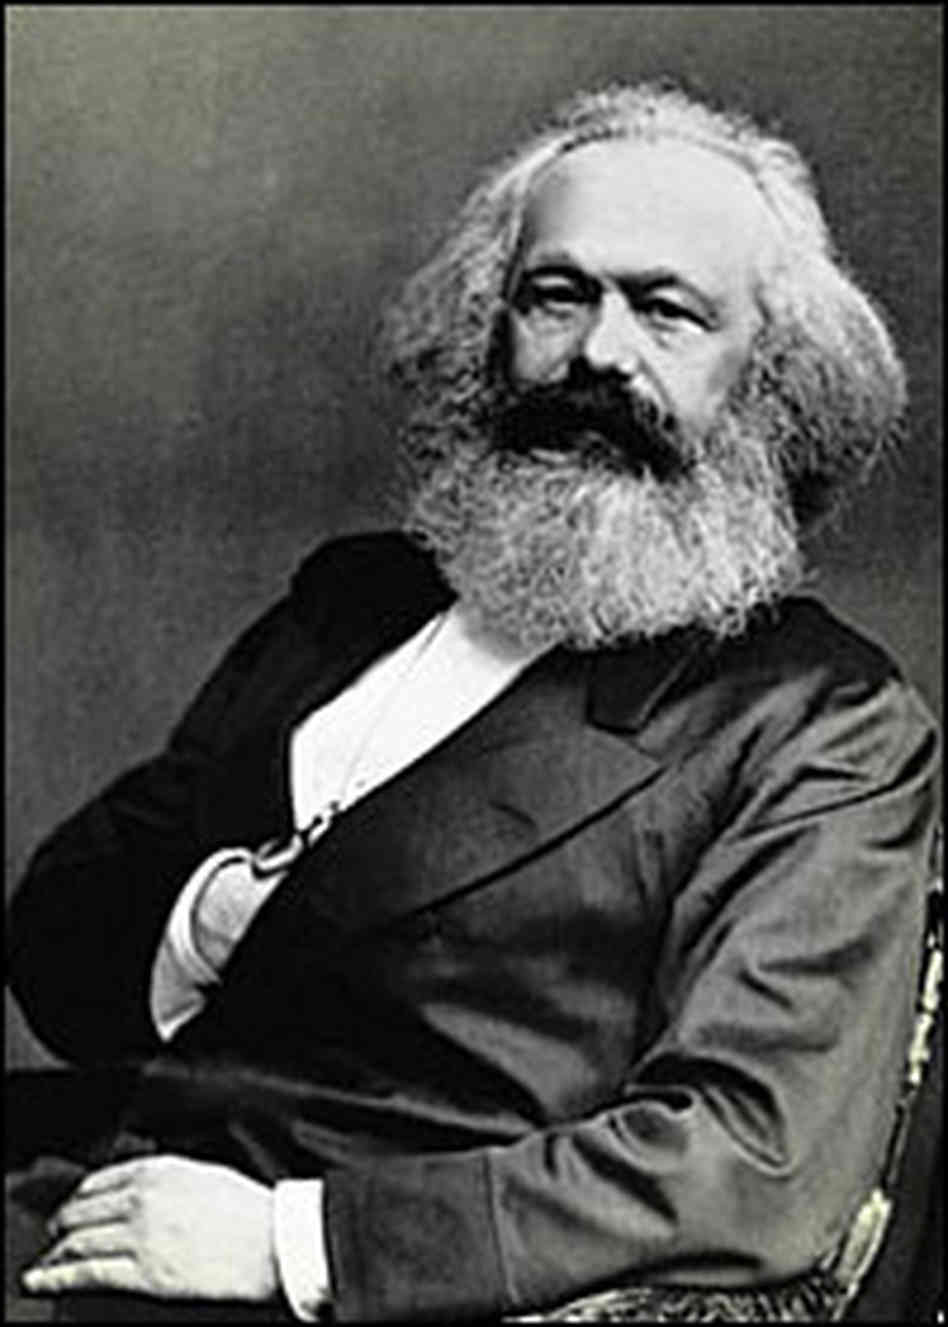 the life and ideas of karl marx a philosopher and socialist revolutionary Revolutionary ideas of karl marx the revolutionary ideas of karl marx, life of a revolutionary 13 socialism before marx 41 ricardo, hegel and feuerbach 53 marxs.